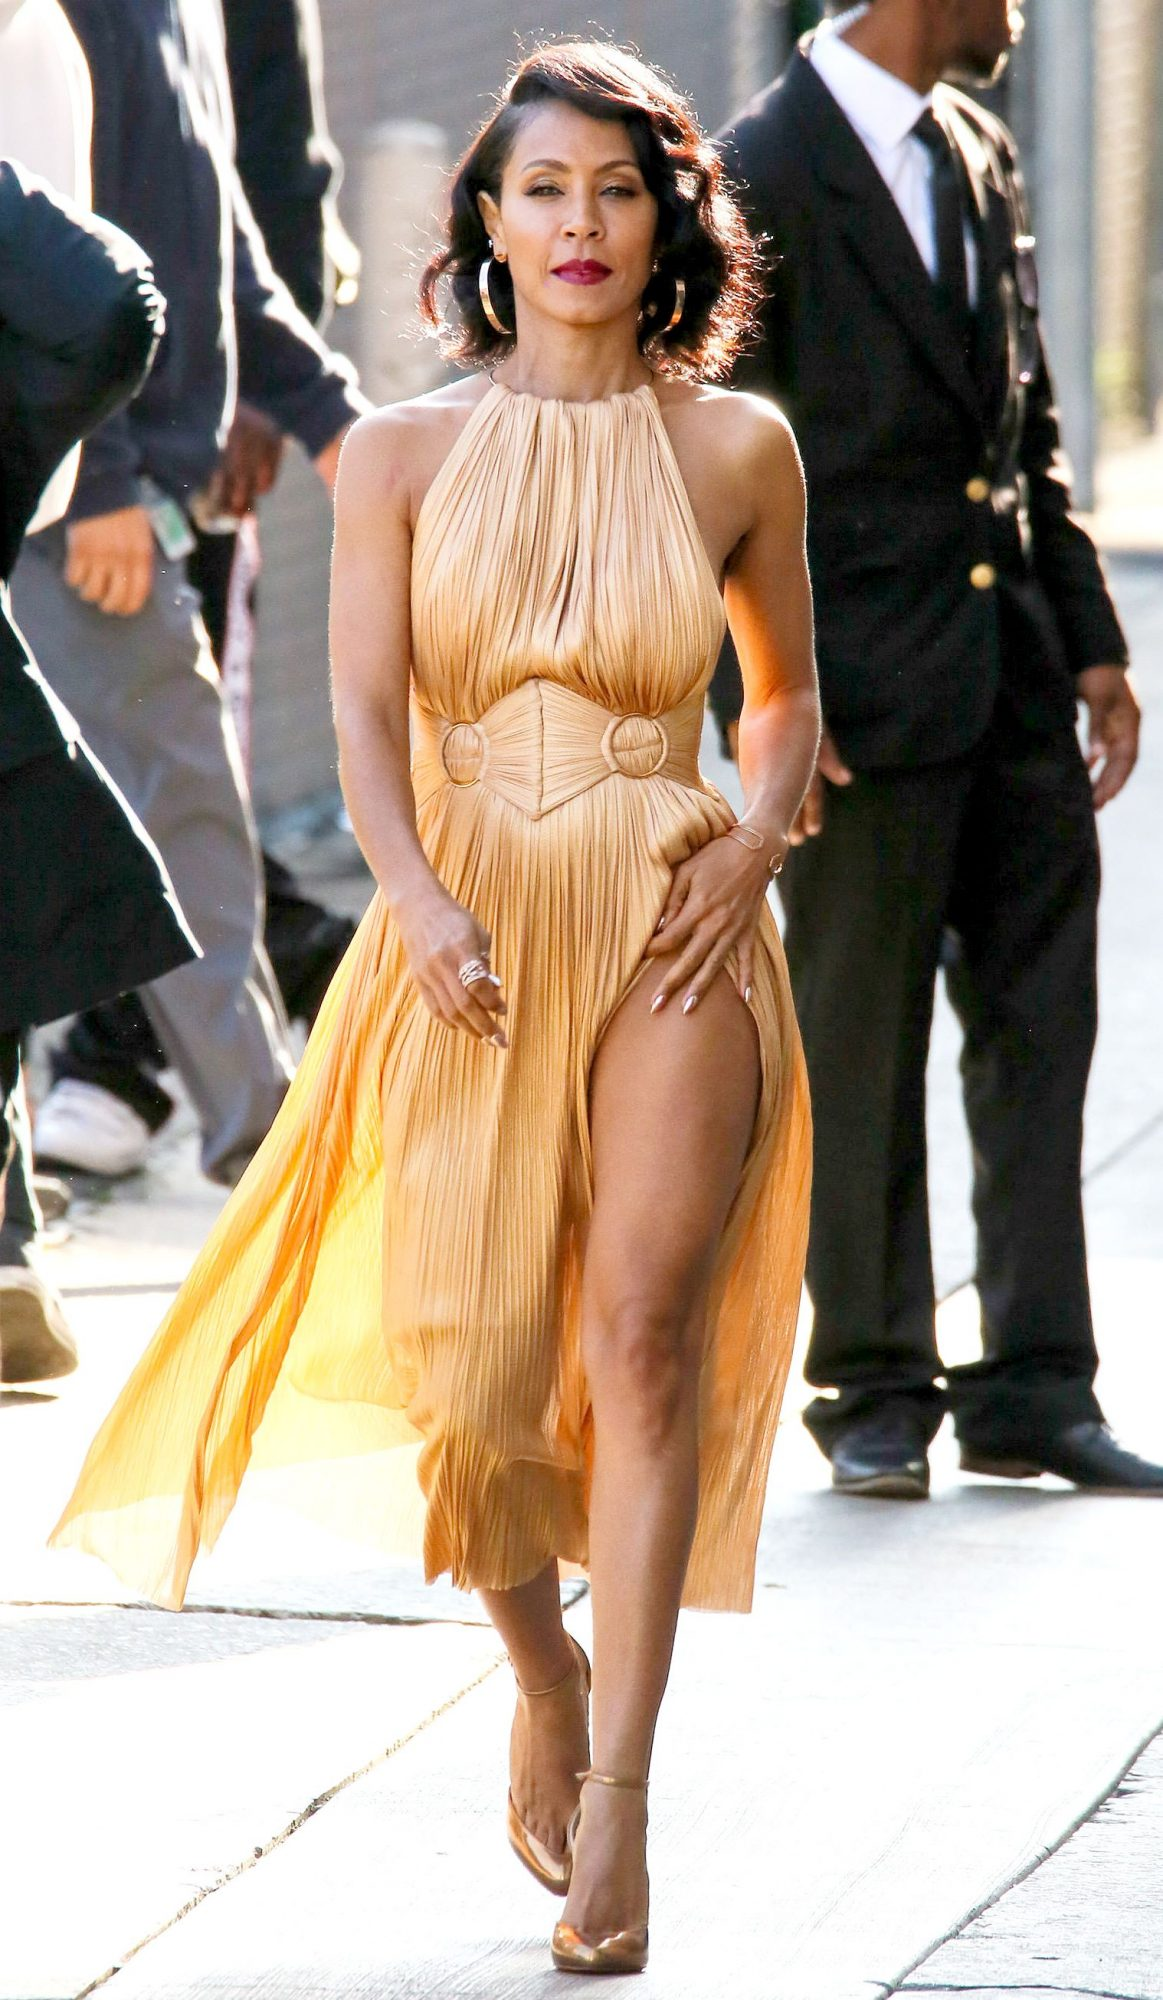 Jada Pinkett Smith Takes Timeless Glamour To Jimmy Kimmel Live In Sexy Gold Dress